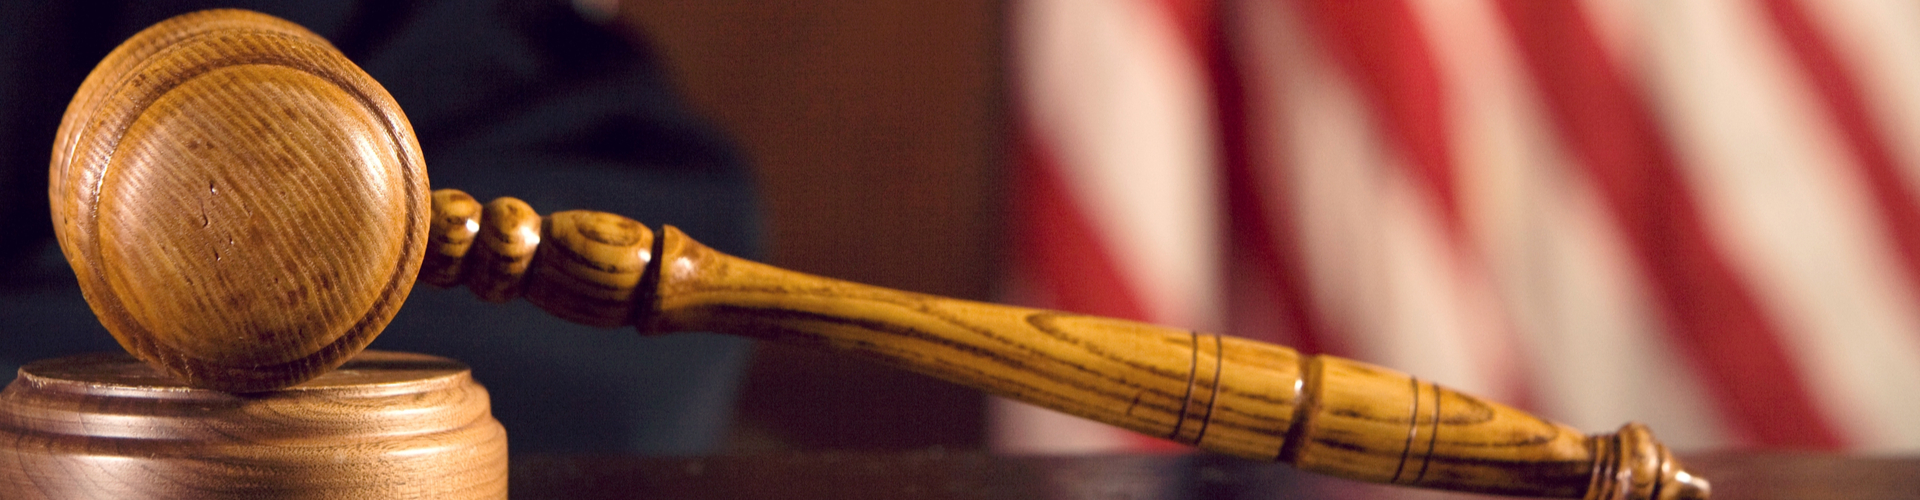 Gavel Cropped